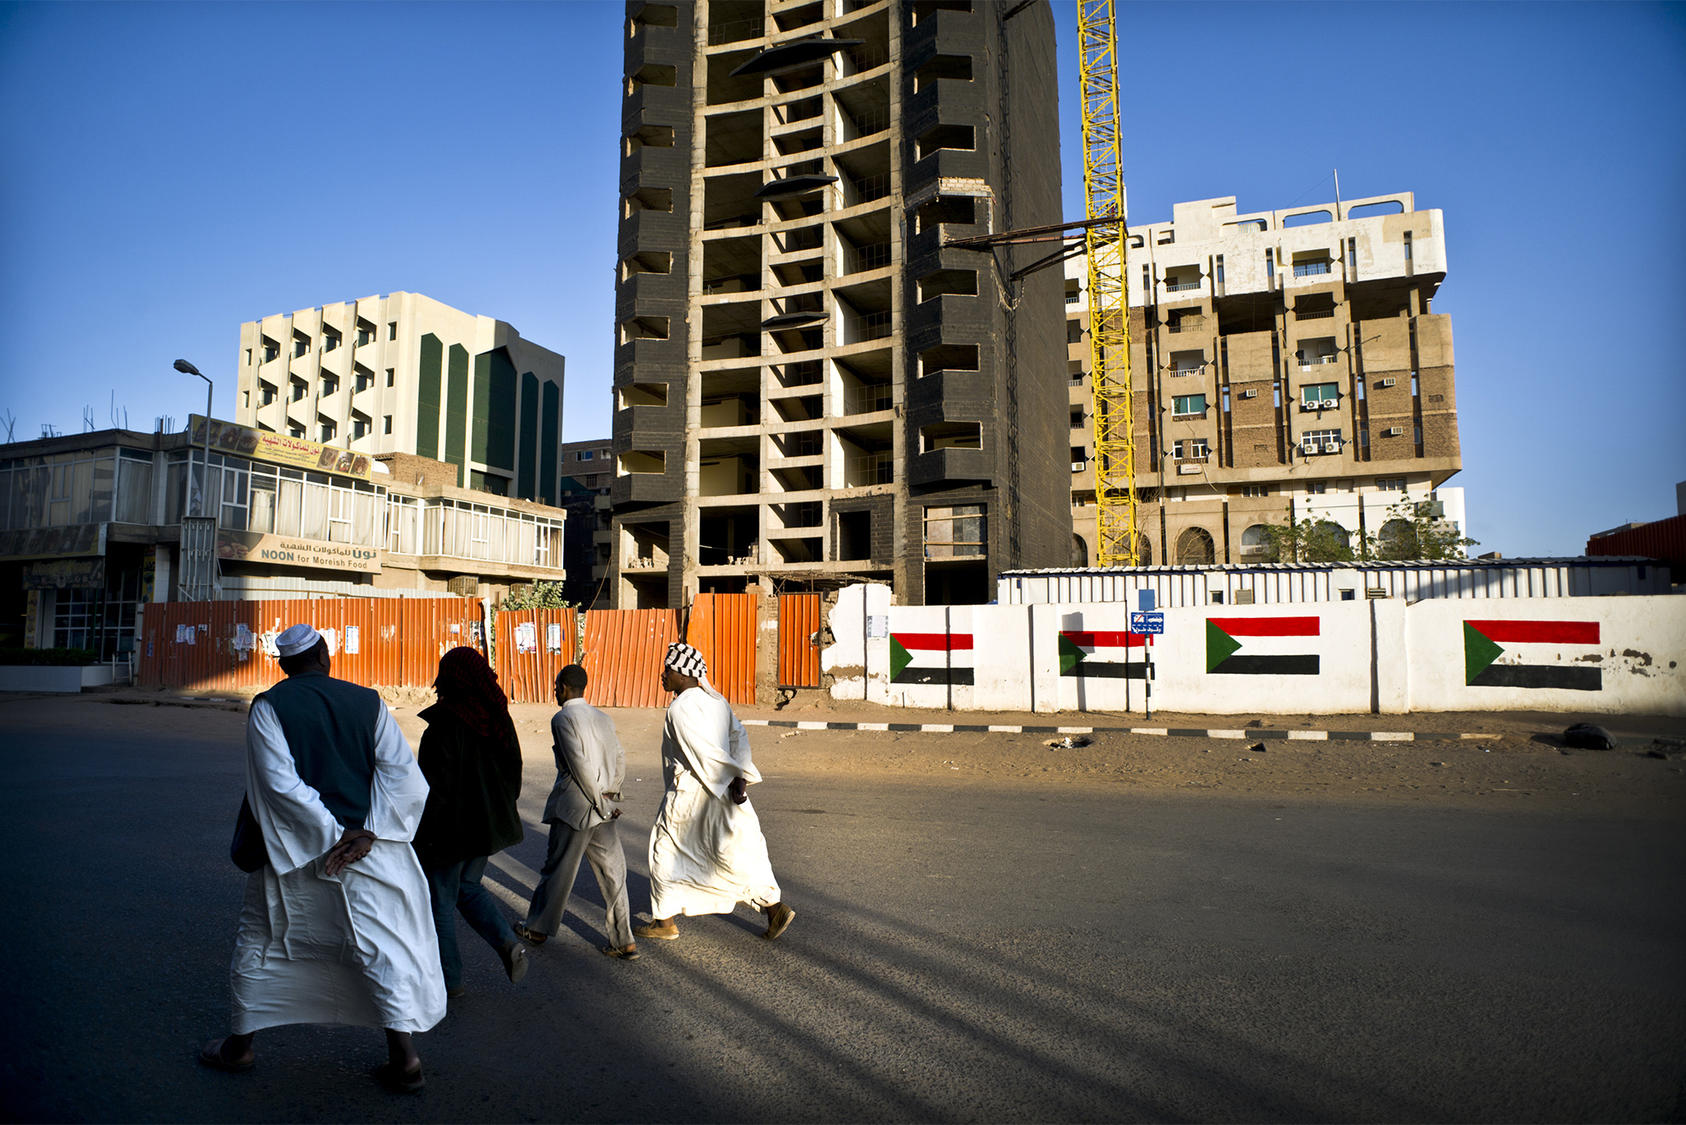 Locals walk pass a paused development project in Khartoum, Sudan, Jan. 26 2012. (Sven Torfinn/The New York Times)